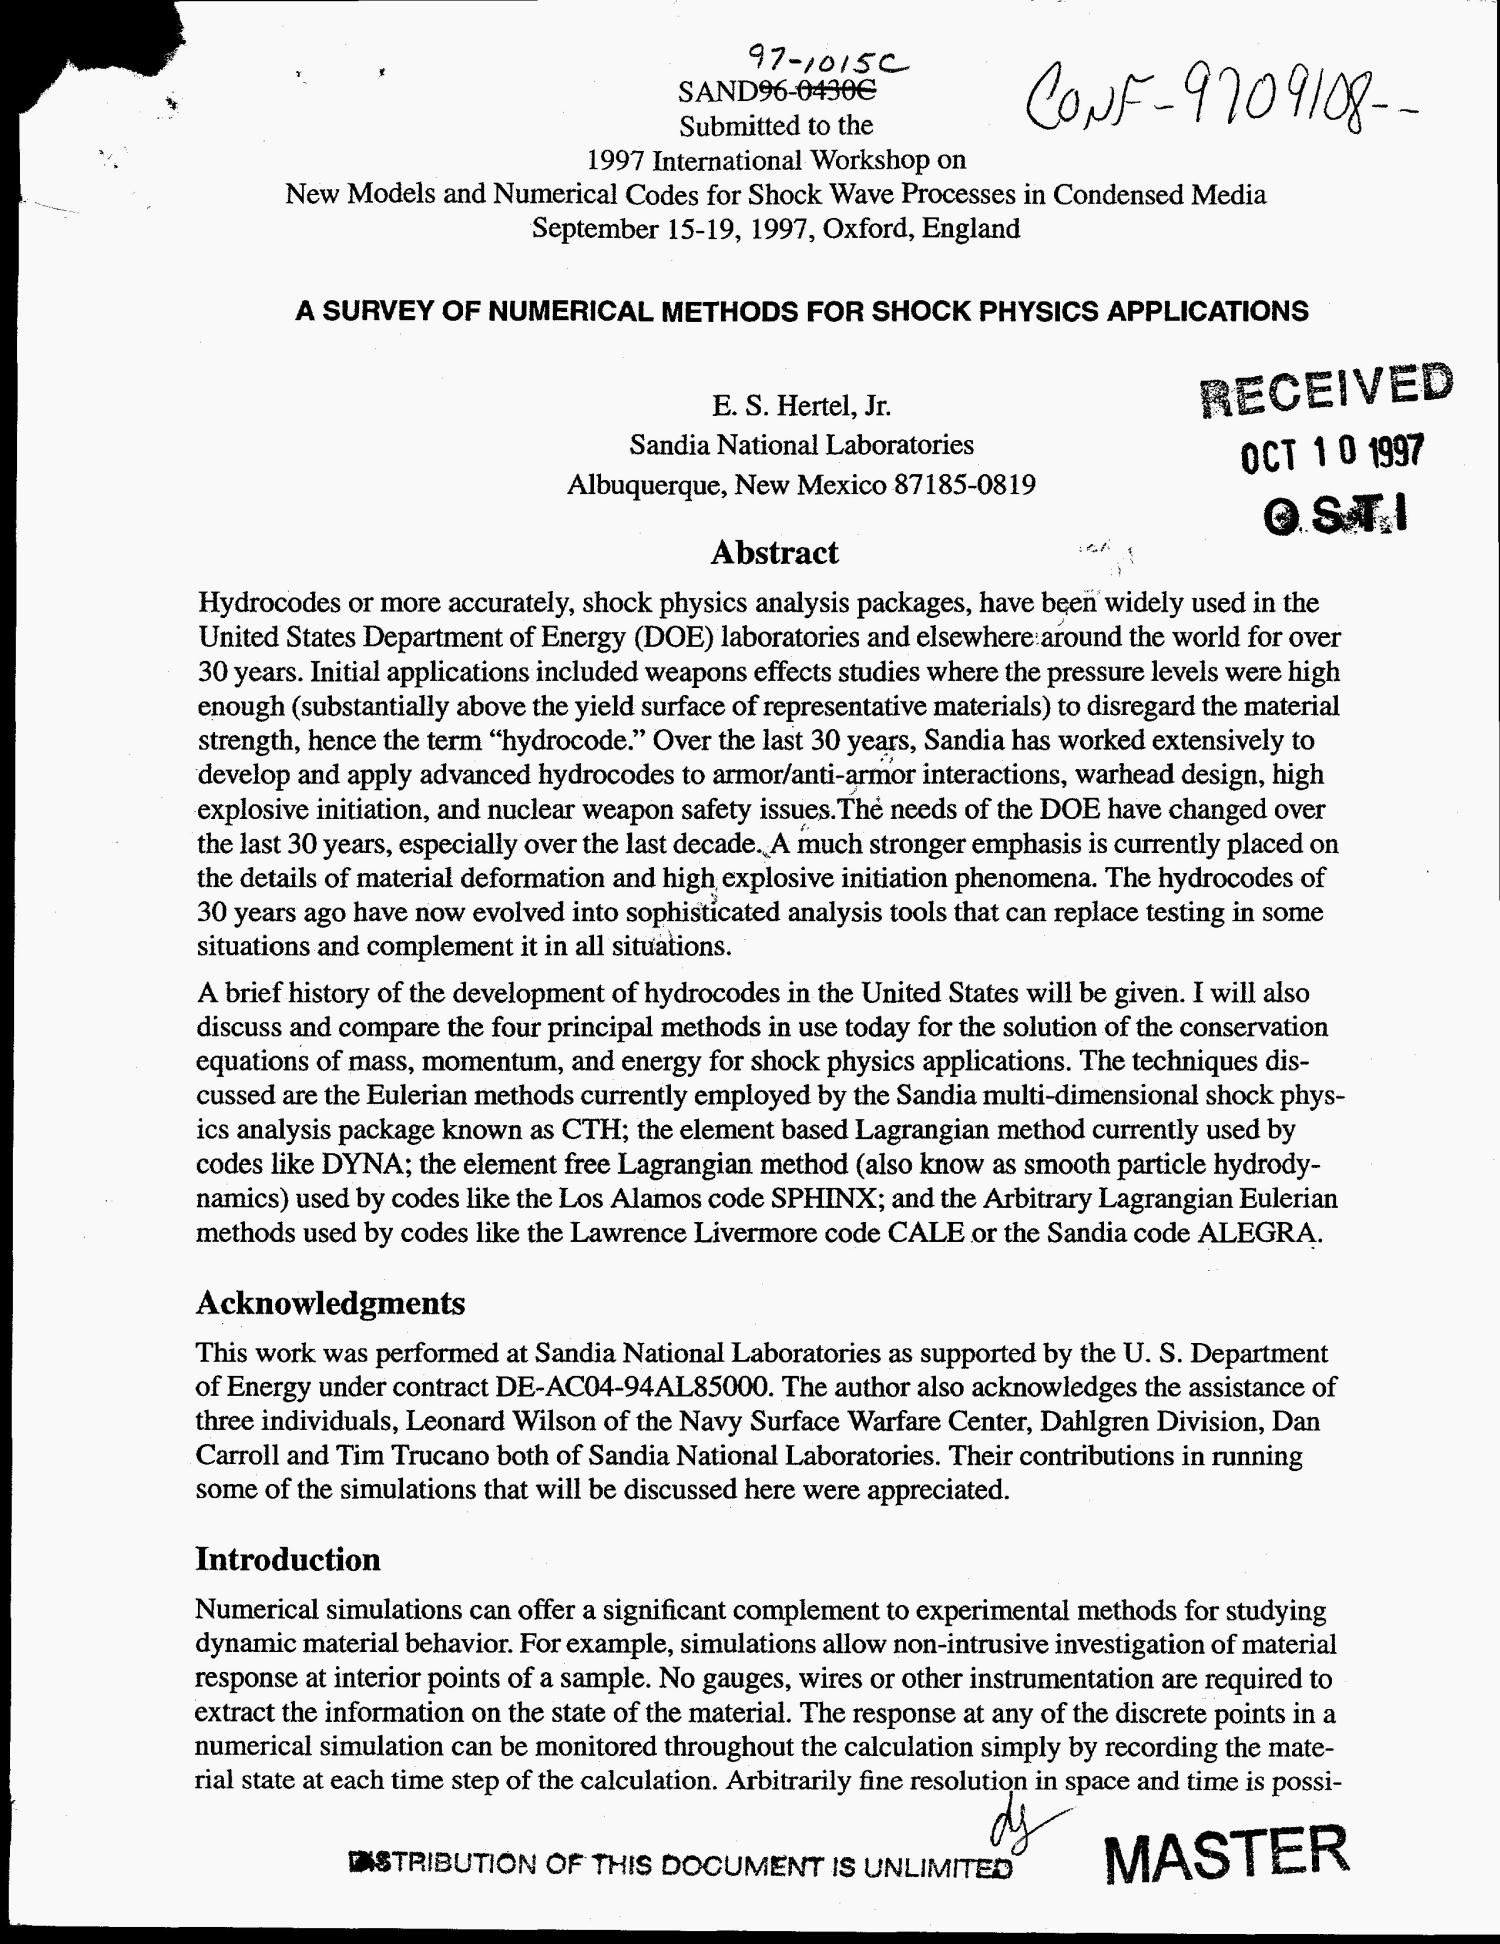 A survey of numerical methods for shock physics applications                                                                                                      [Sequence #]: 1 of 22